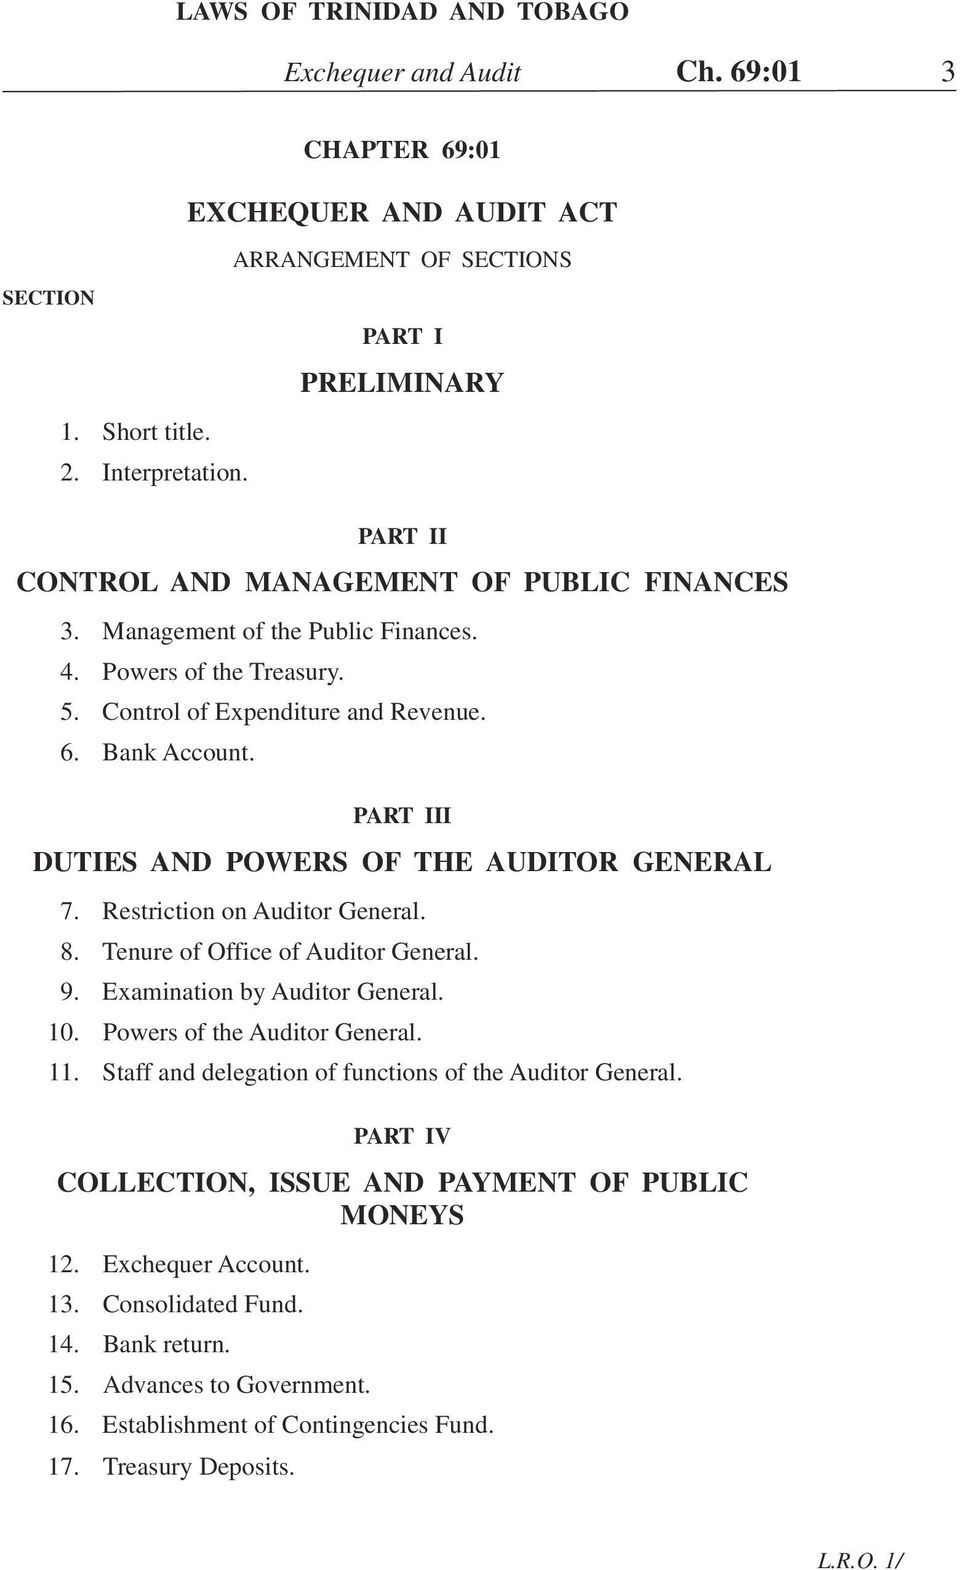 Control of Expenditure and Revenue. 6. Bank Account. PART III DUTIES AND POWERS OF THE AUDITOR GENERAL 7. Restriction on Auditor General. 8. Tenure of Office of Auditor General. 9.